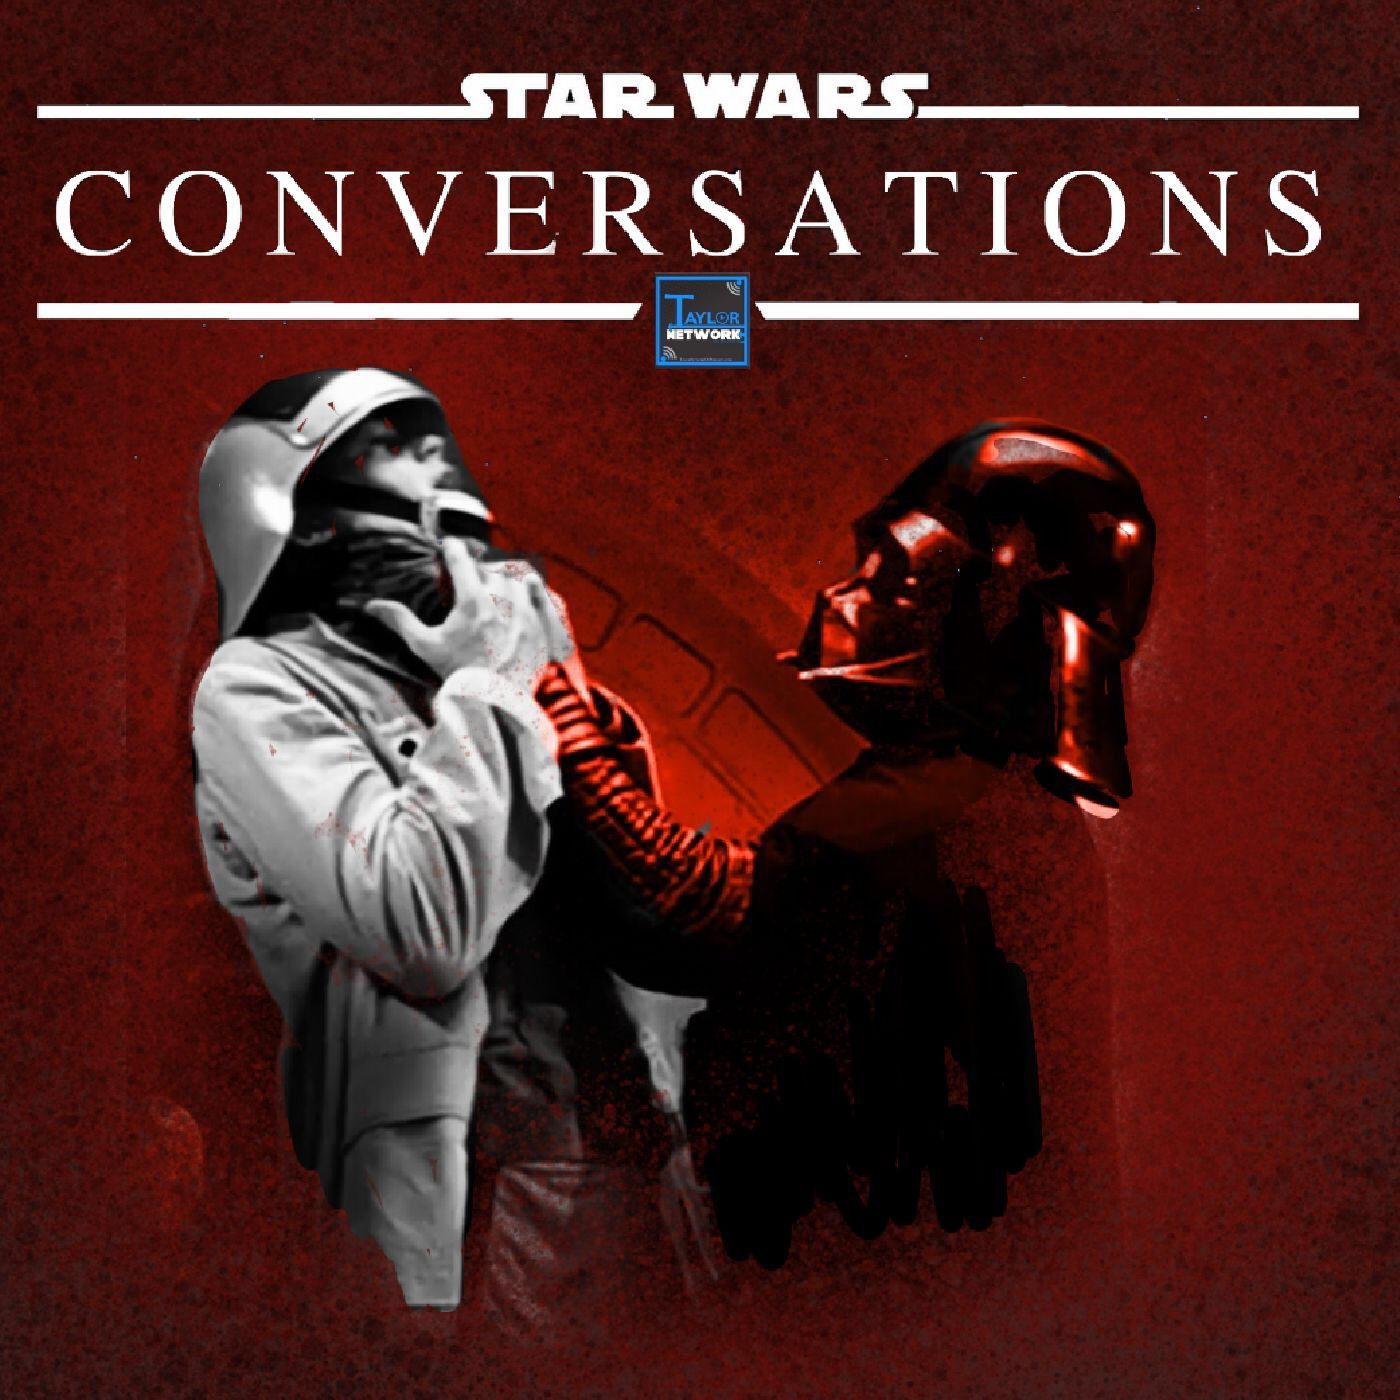 Star Wars Conversations